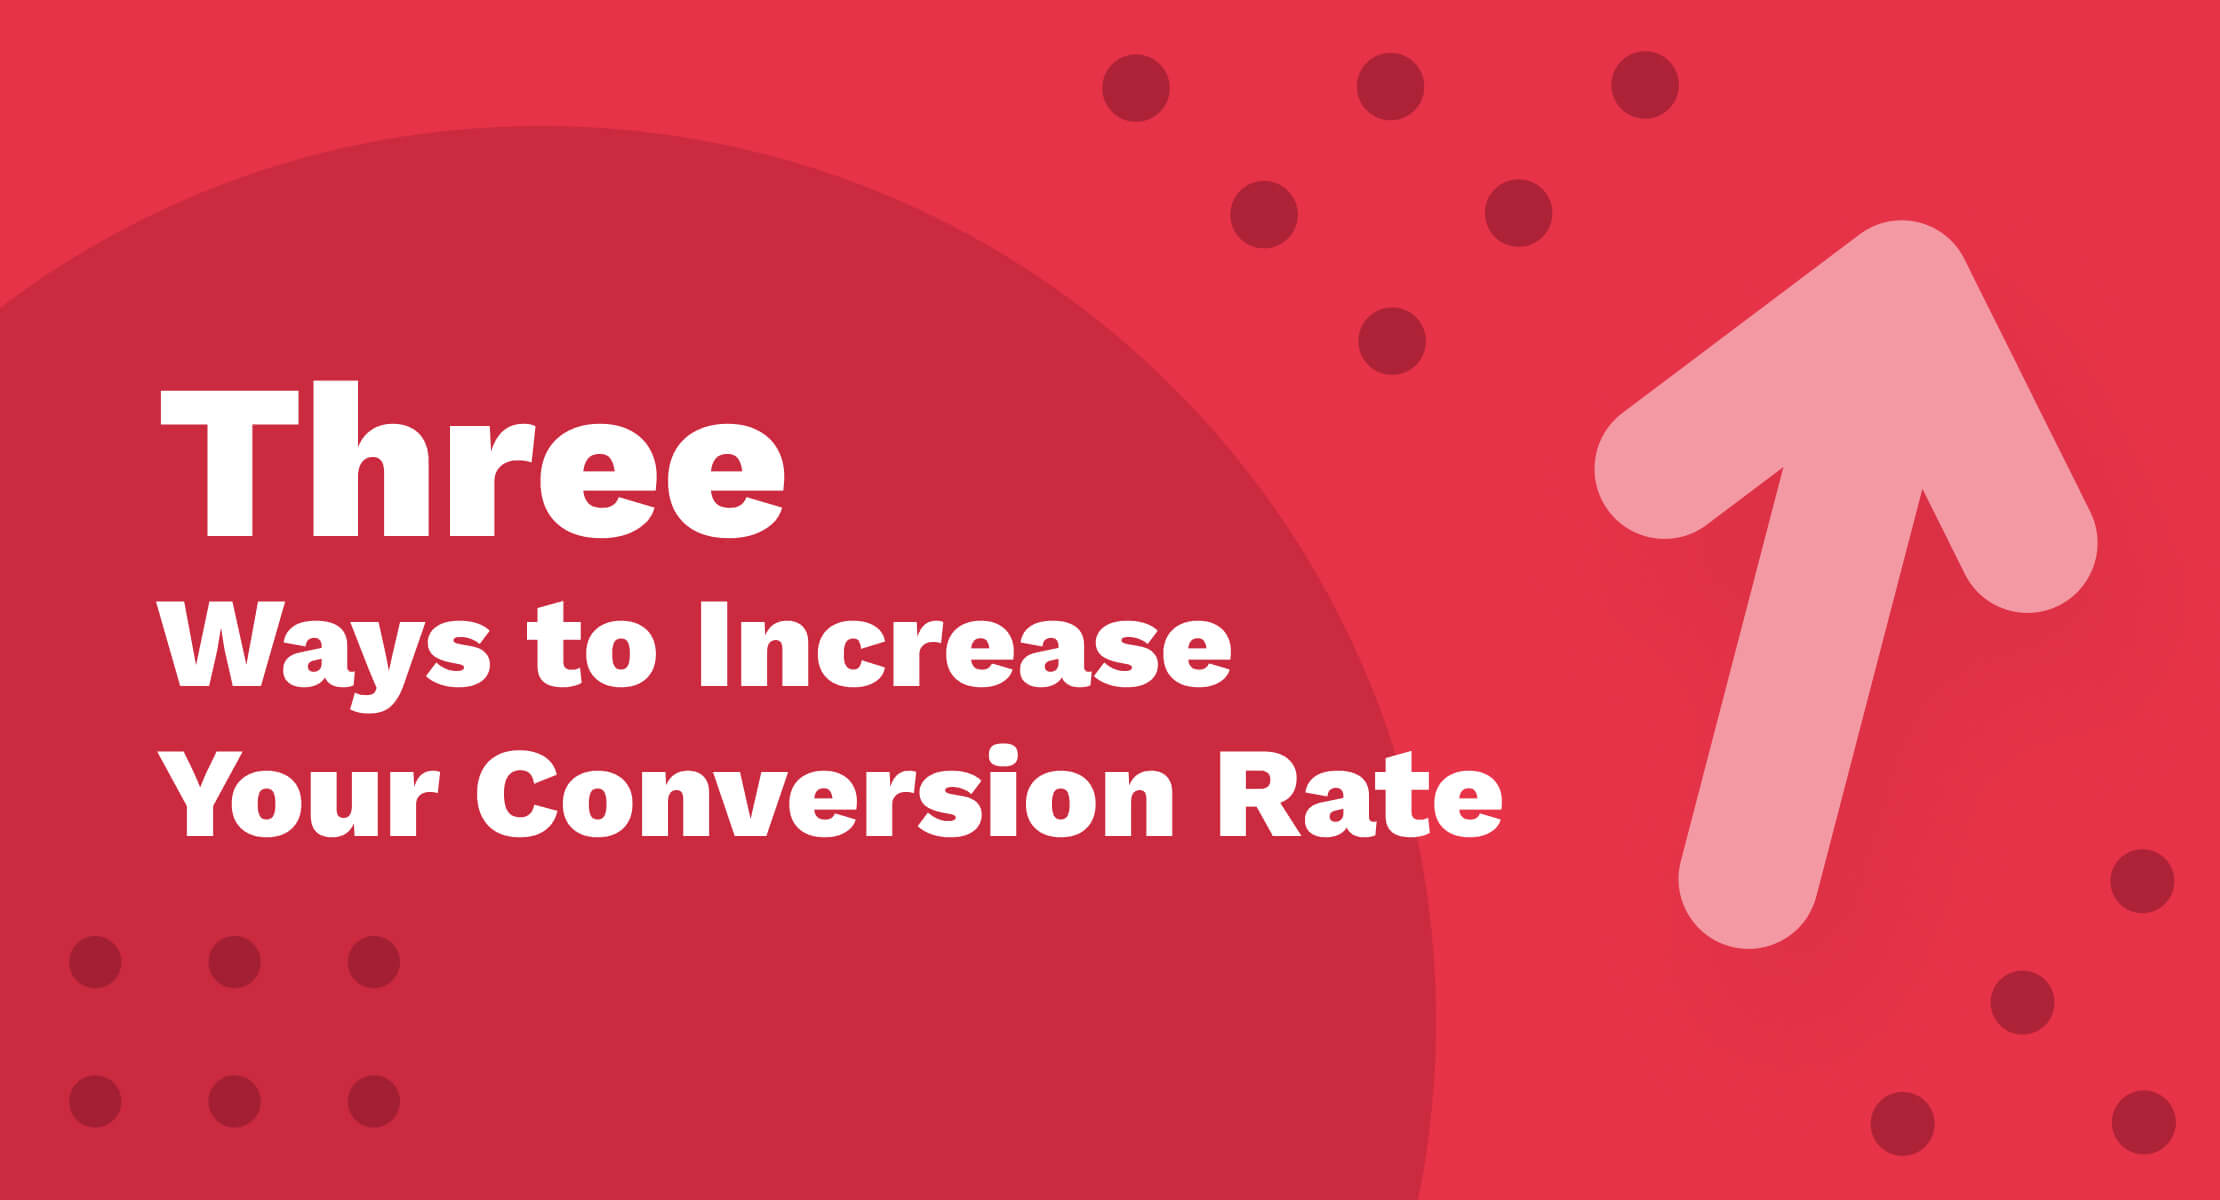 Three Ways to Increase Your Conversion Rate